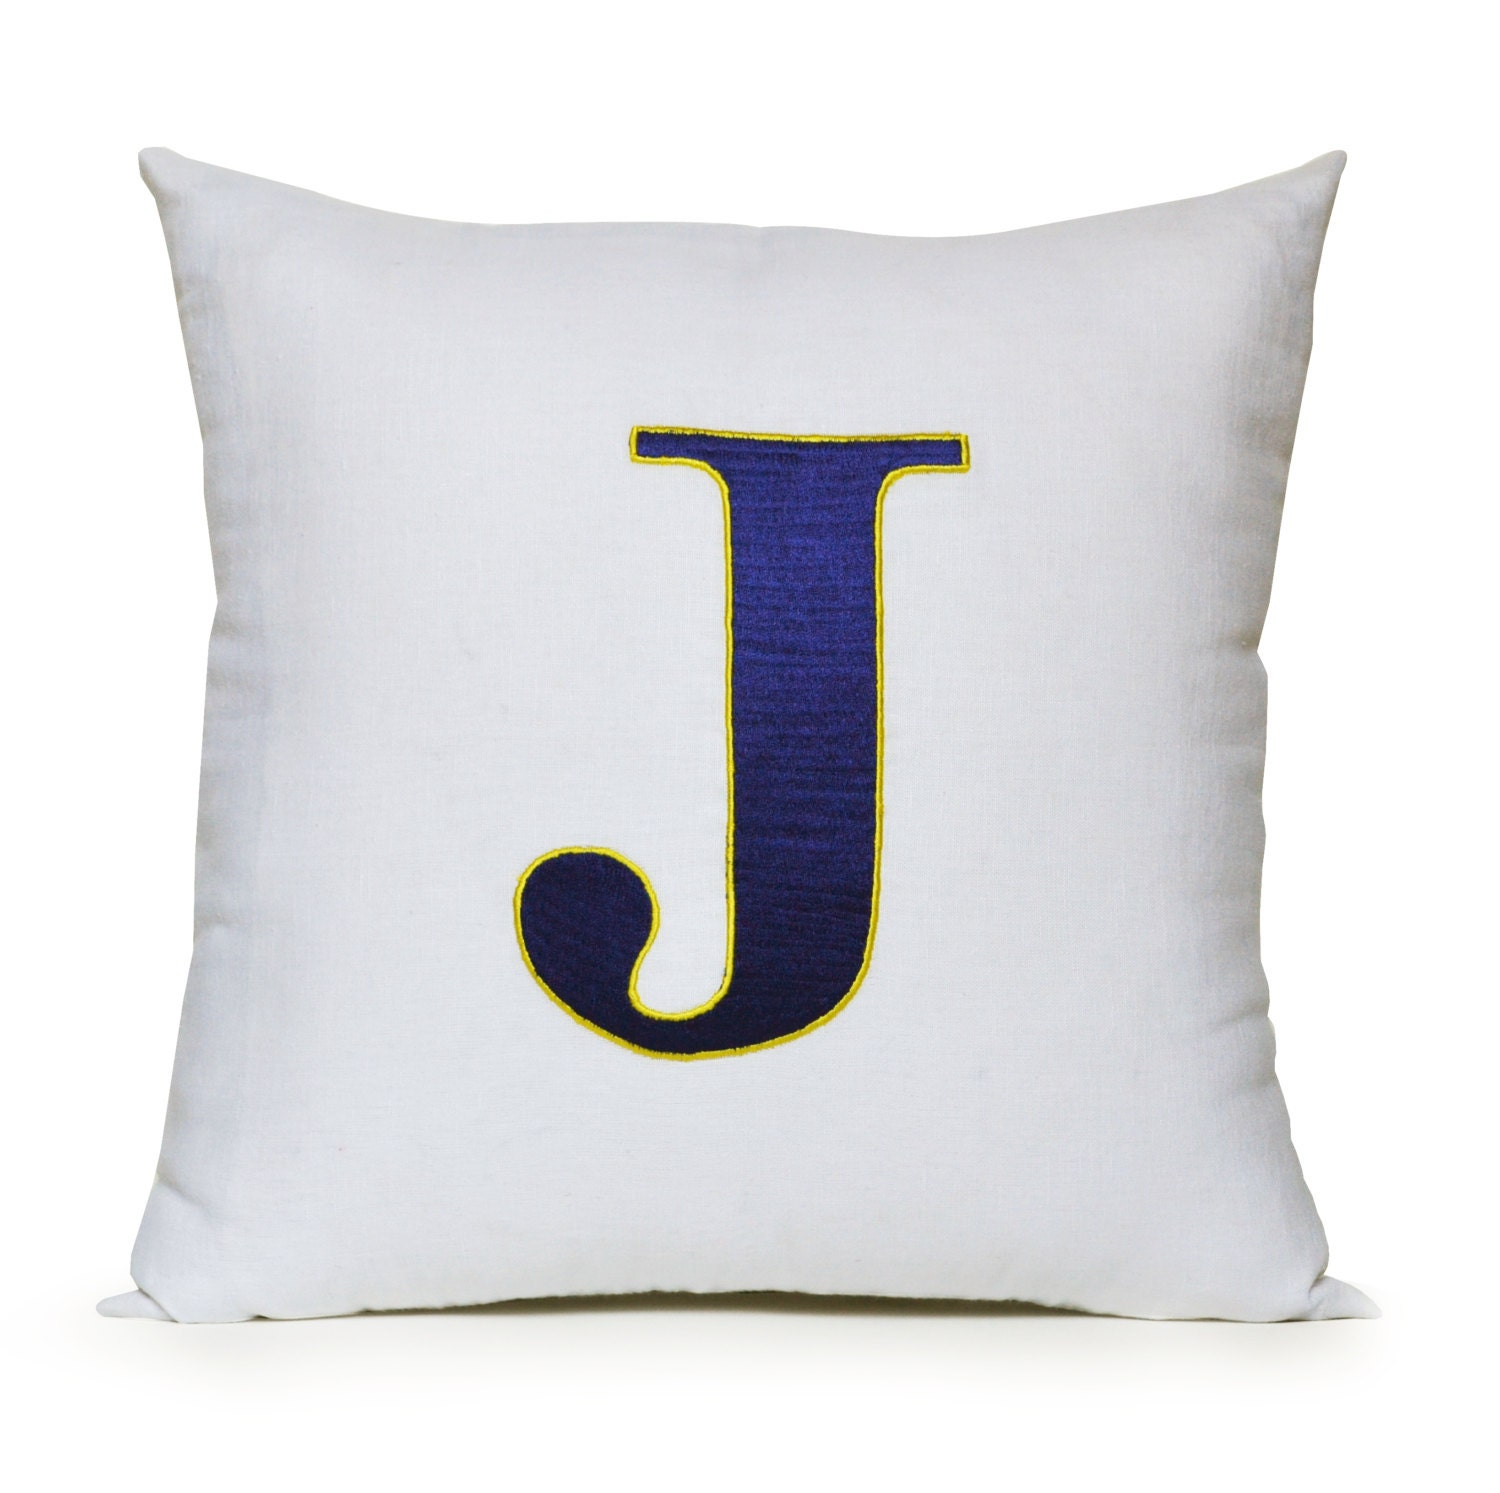 Monogram Pillow Cover Kids Monogram Pillow Boys Room Pillow